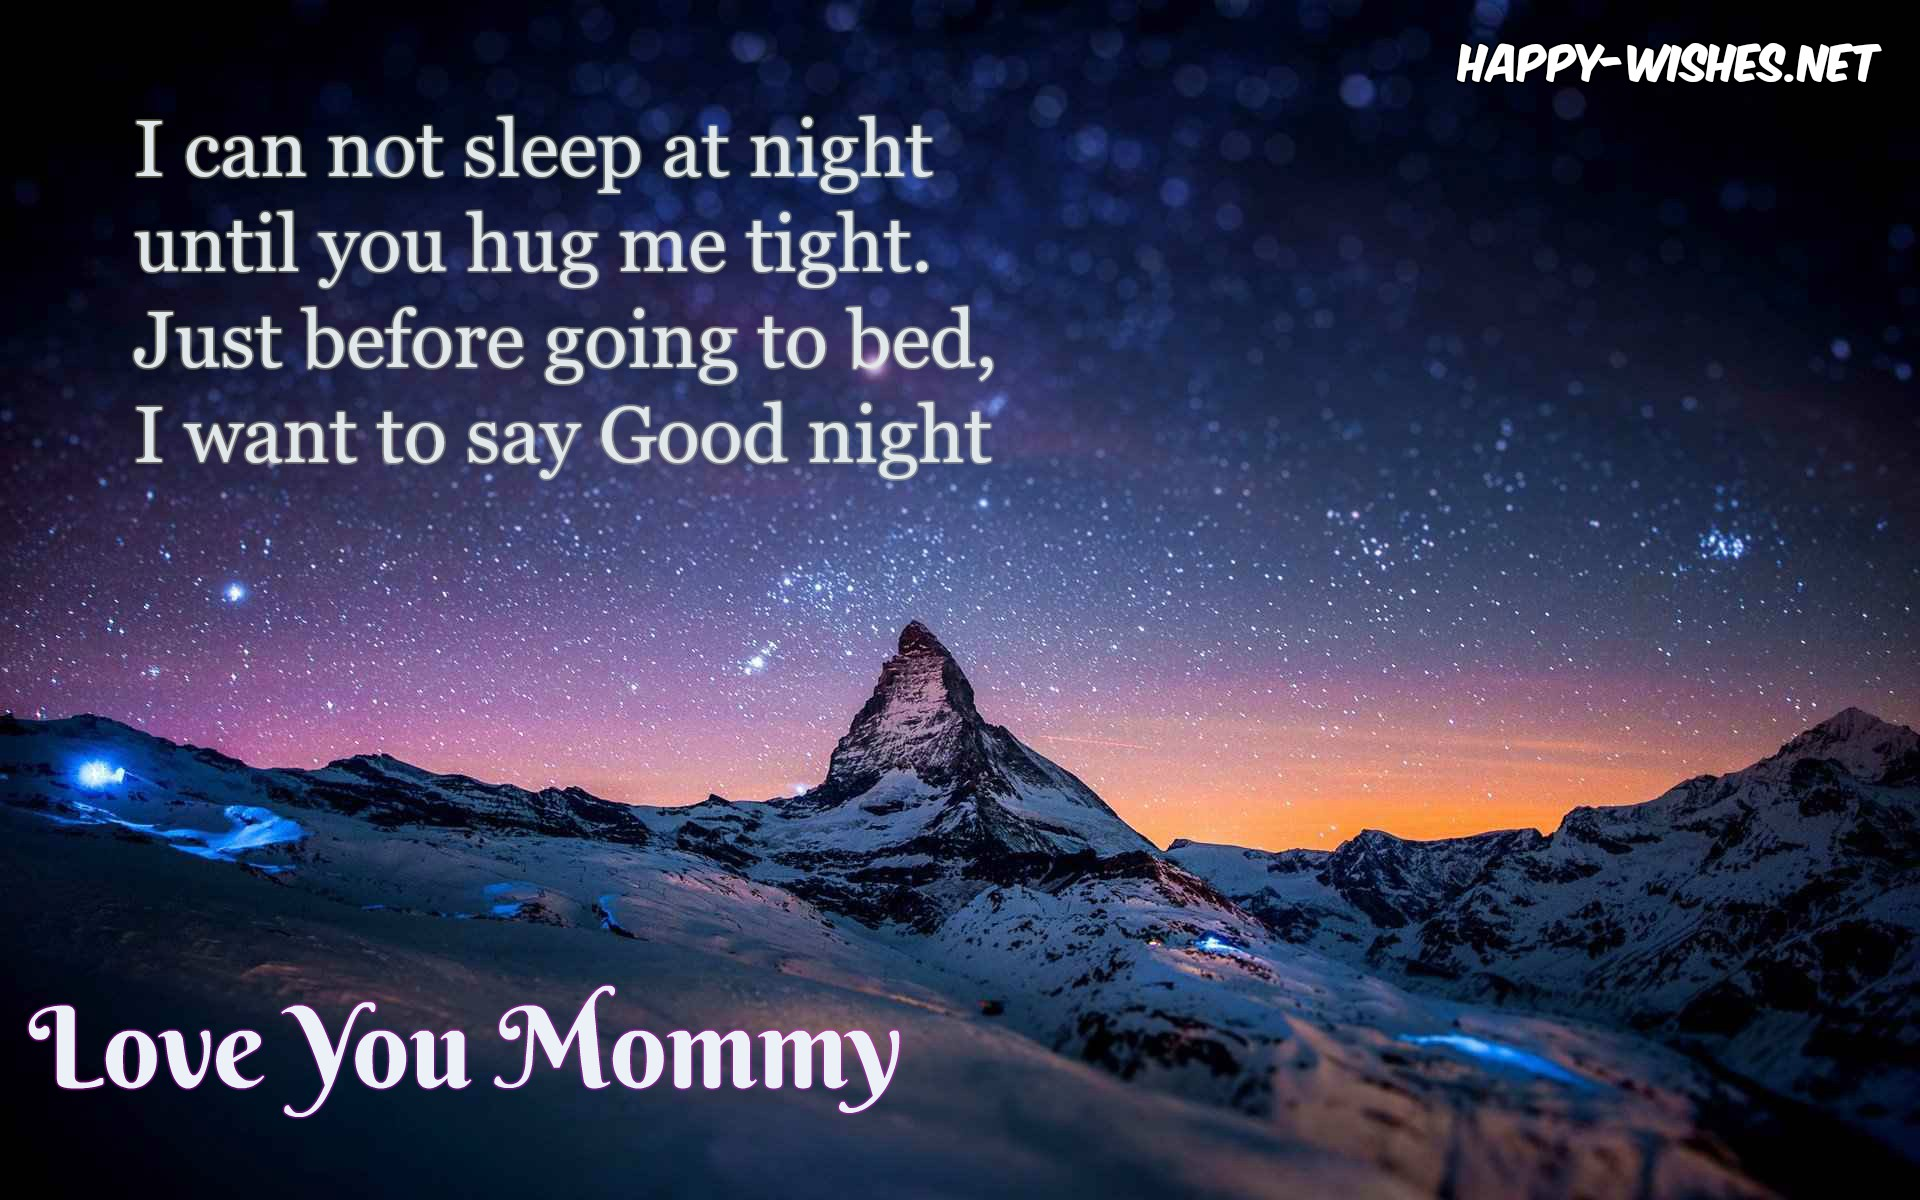 Good Night wishes for mom